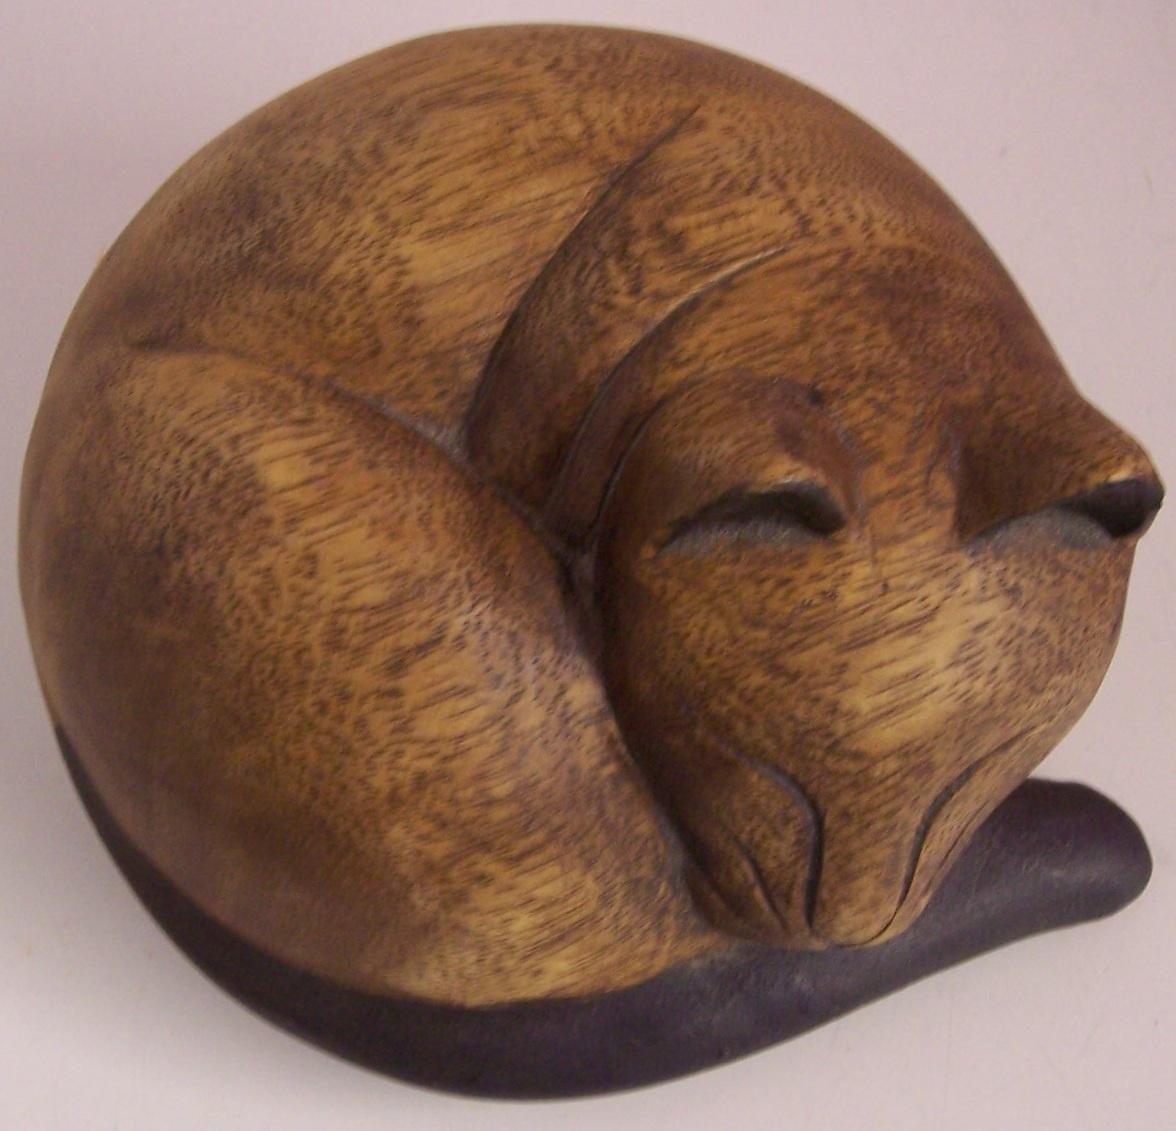 Vintage Wood Carved Sleeping Cat Sculpture From Modseller